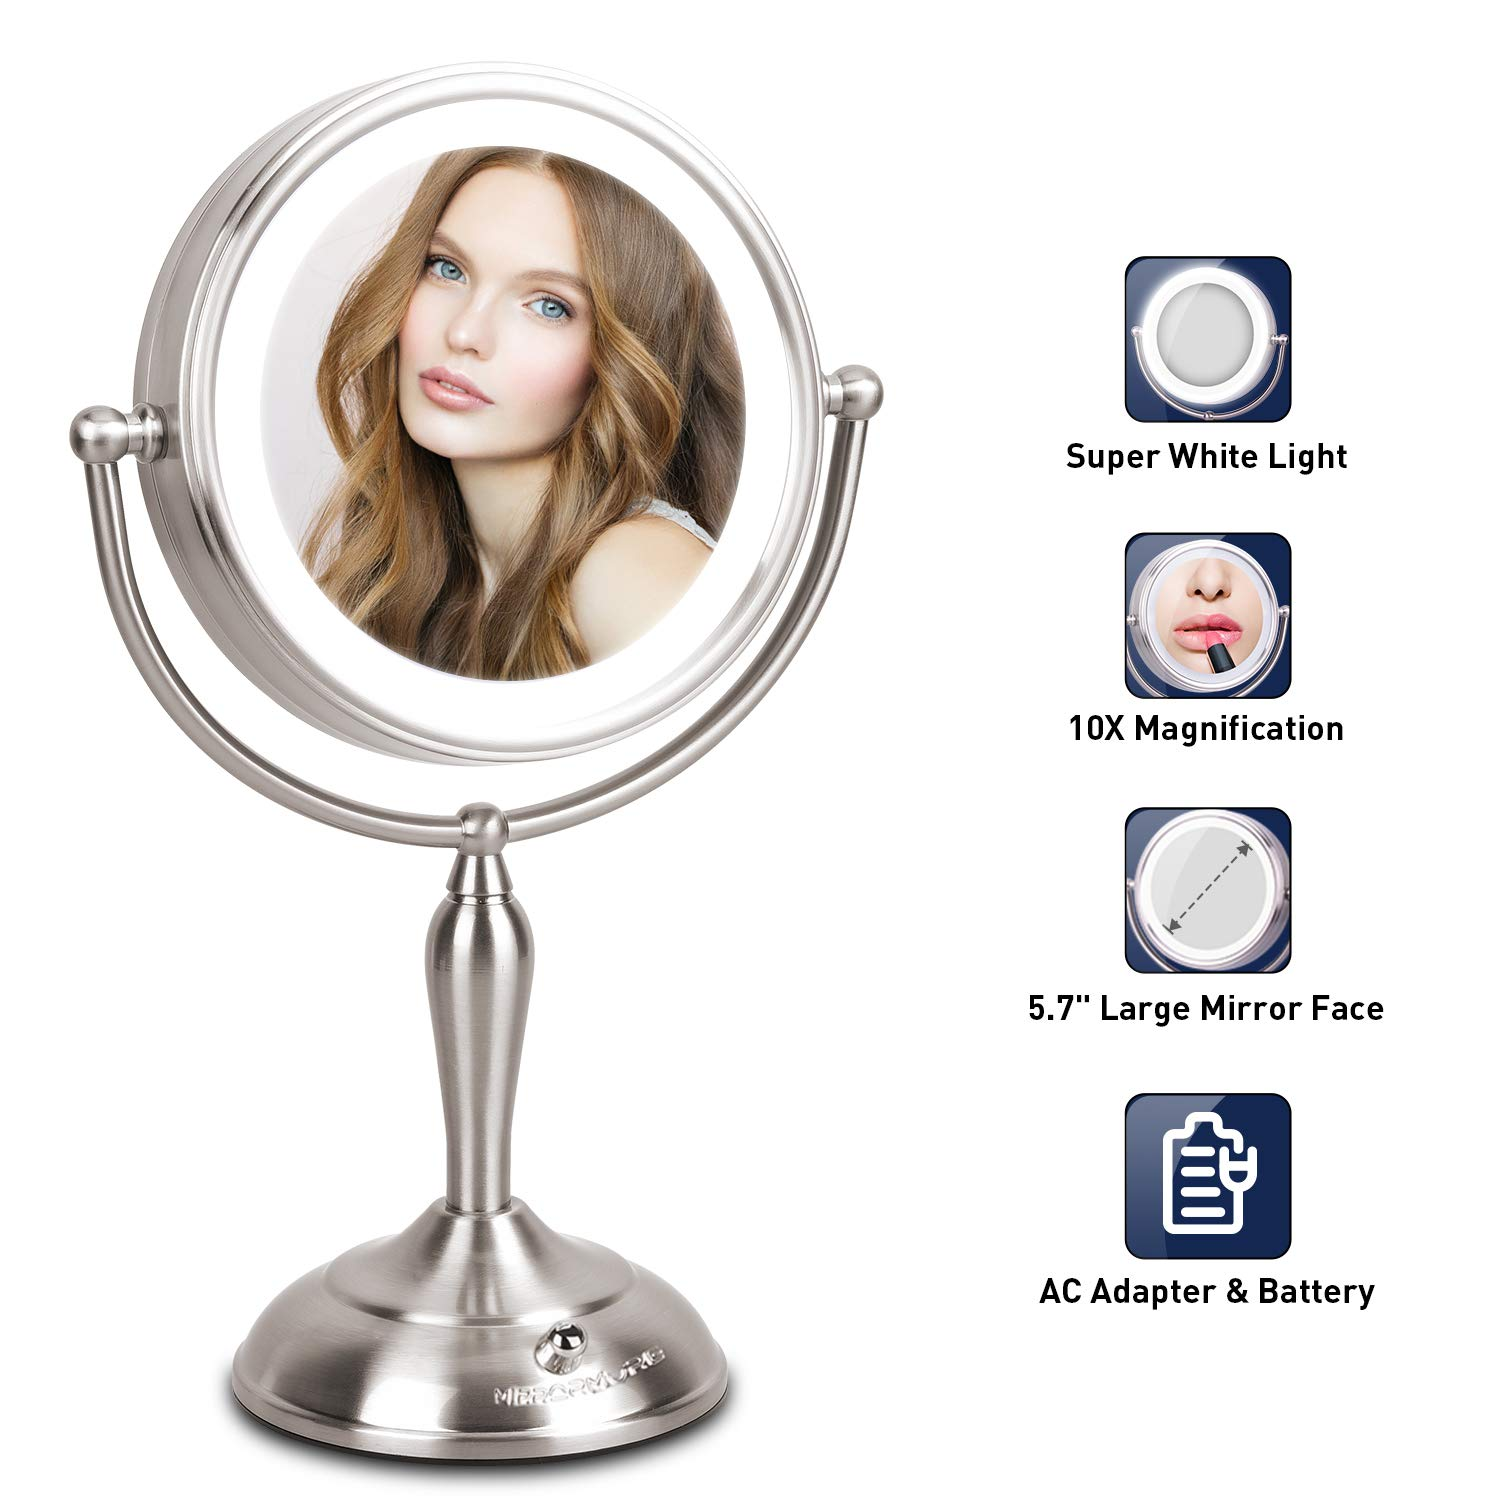 MIRRORMORE Lighted Makeup Mirror - 7.5 Inch Lighted Vanity Mirror, 1x/10x Magnifying Double Sided Mirror With Stand, AC Adapter Or Battery Operated, Natural White Light, Cord Or Cordless by MIRRORMORE